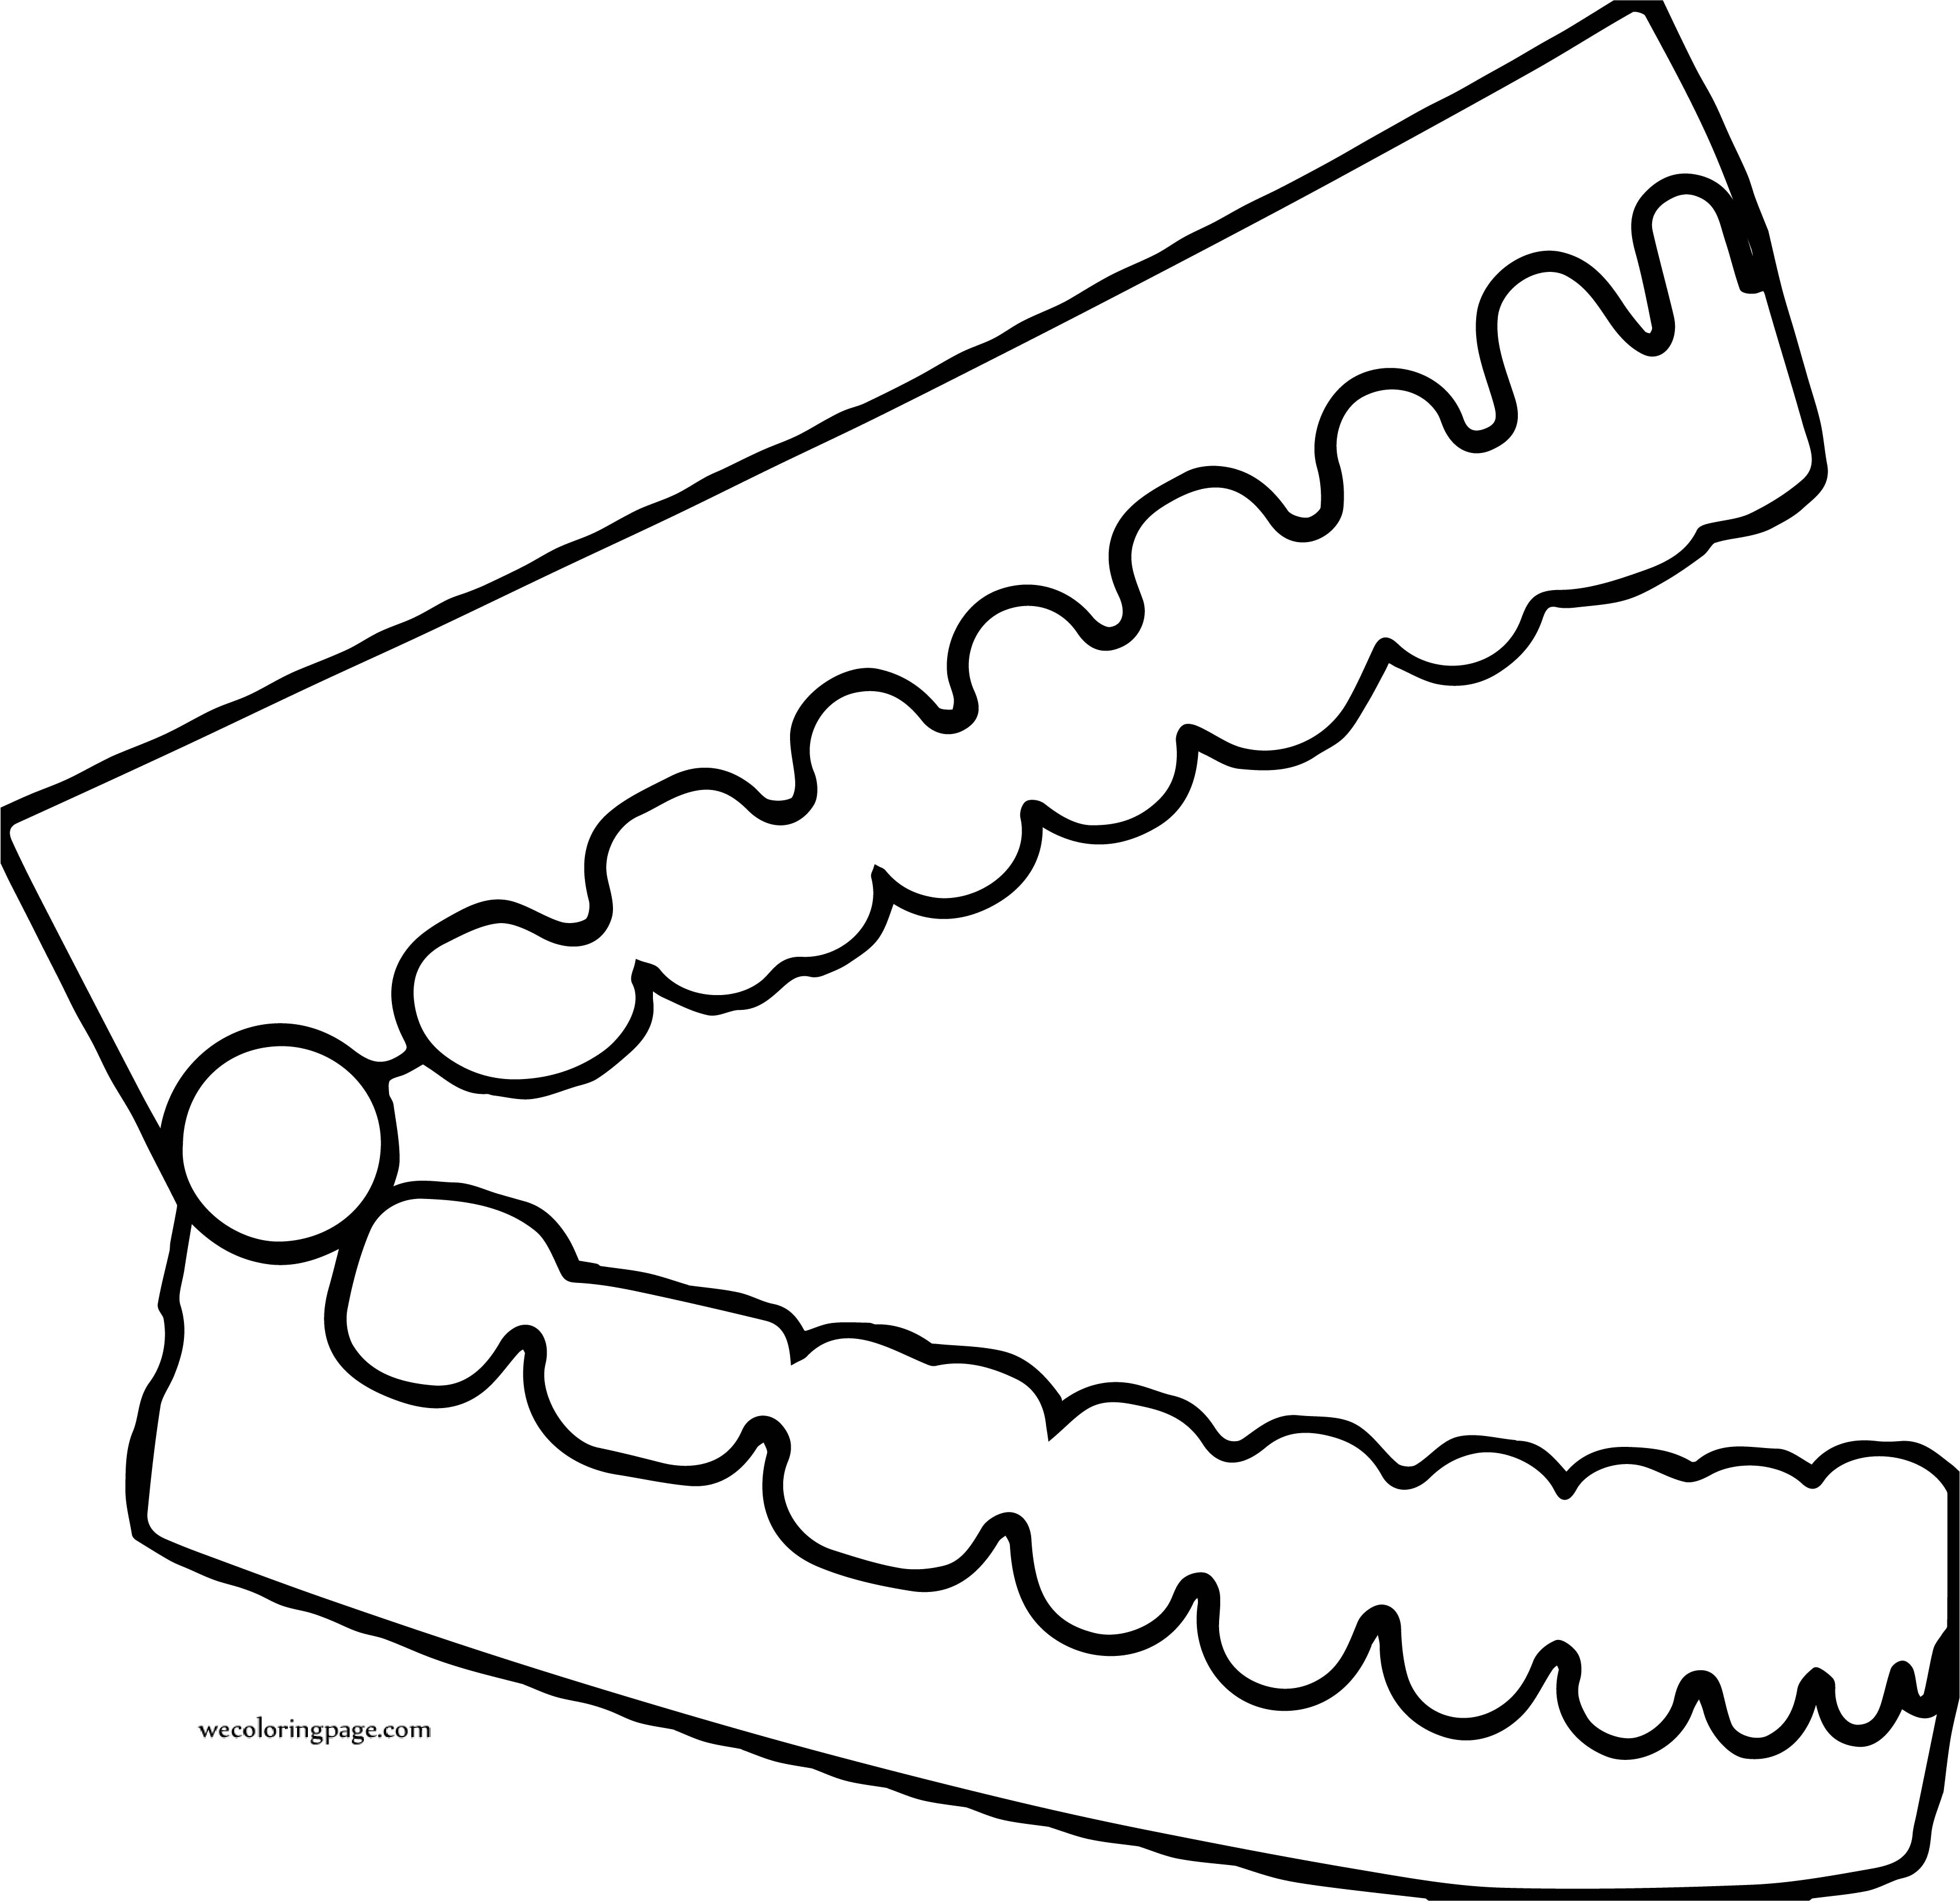 Open Teeth Dental Coloring Page